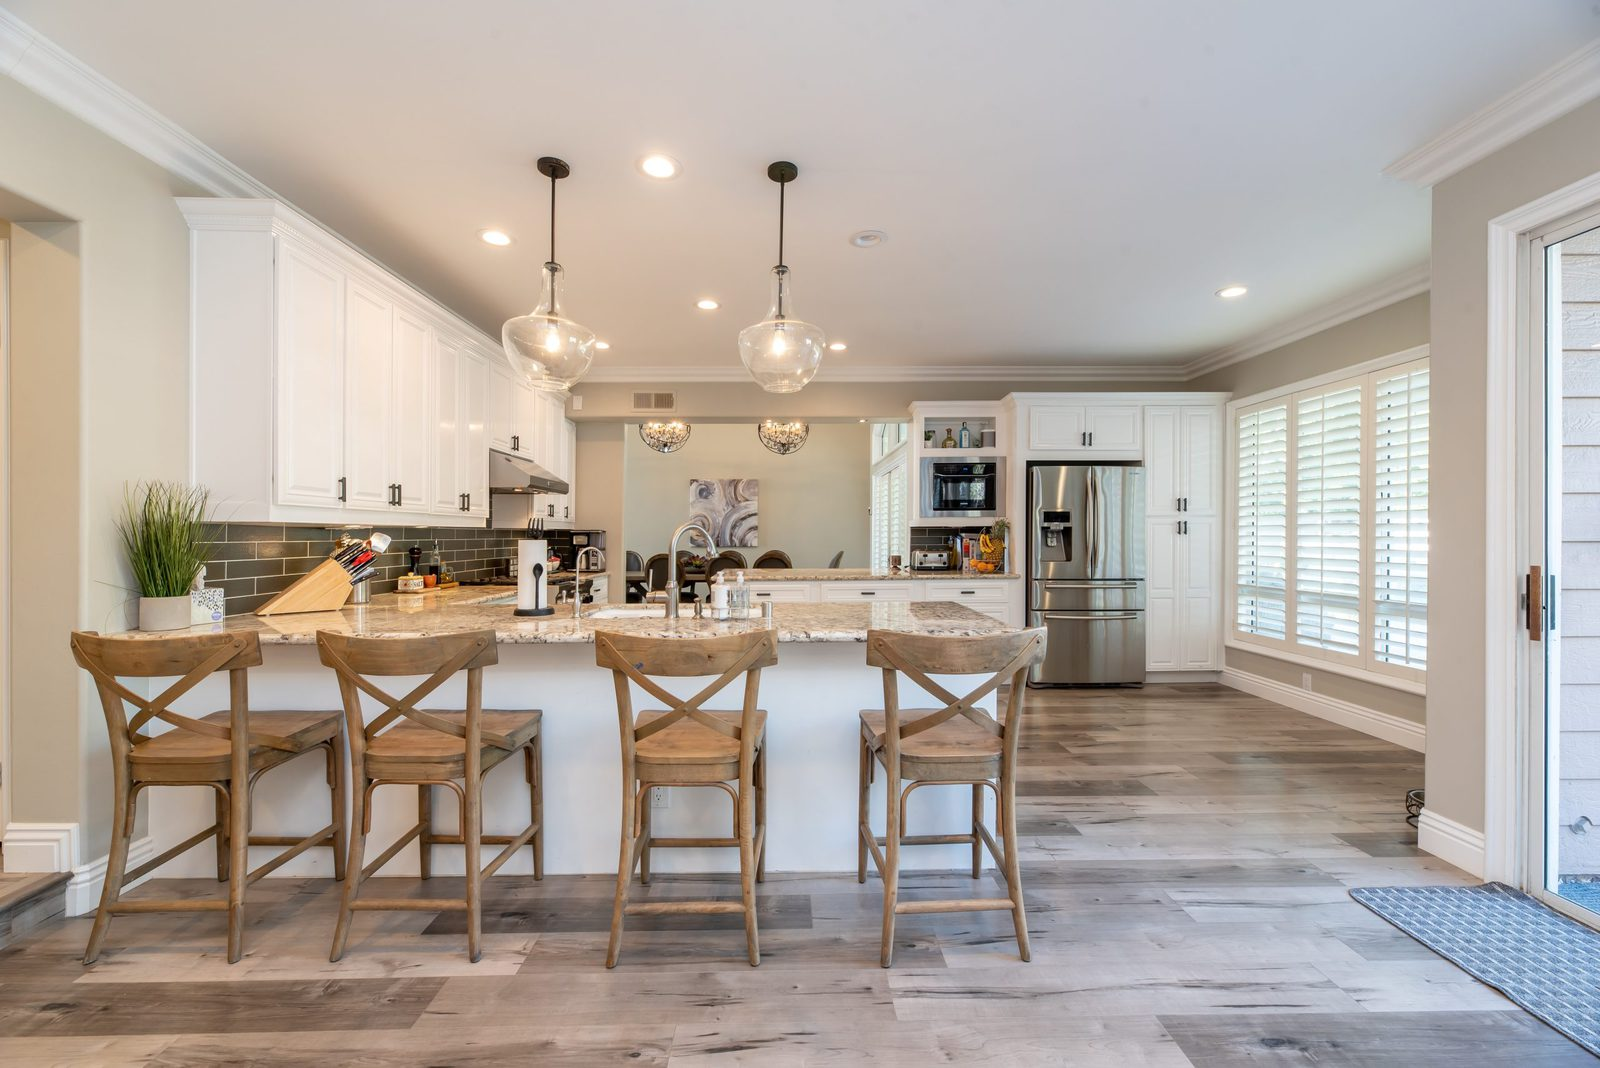 Key Takeaways On Home Design Trends For Your Great Falls Home in 2017